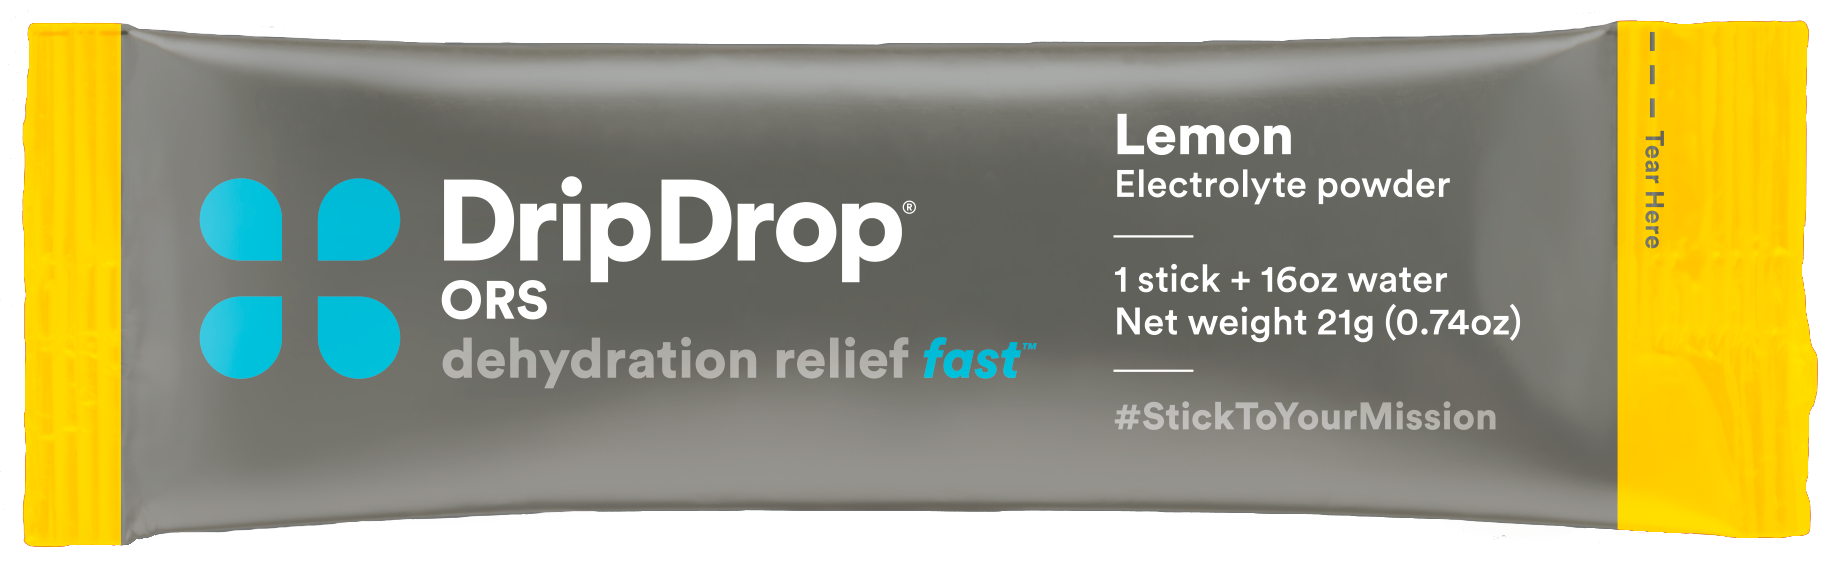 DripDrop Electrolyte Oral Hydration Powder